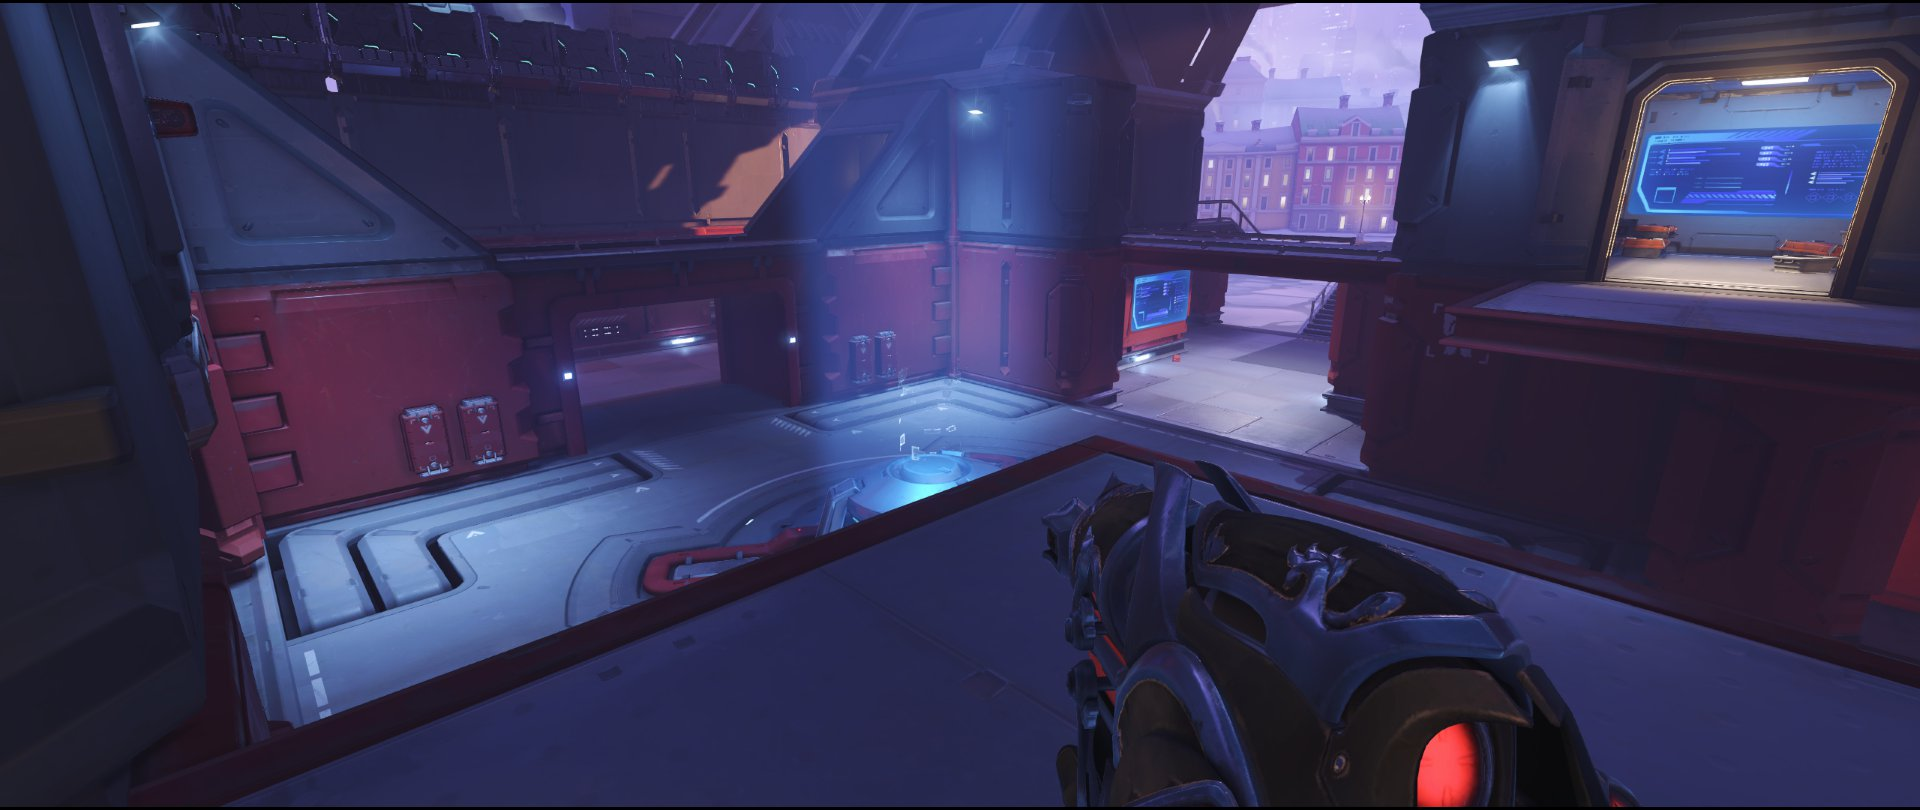 Station view attack sniping spot Widowmaker Volskaya Industries Overwatch.jpg